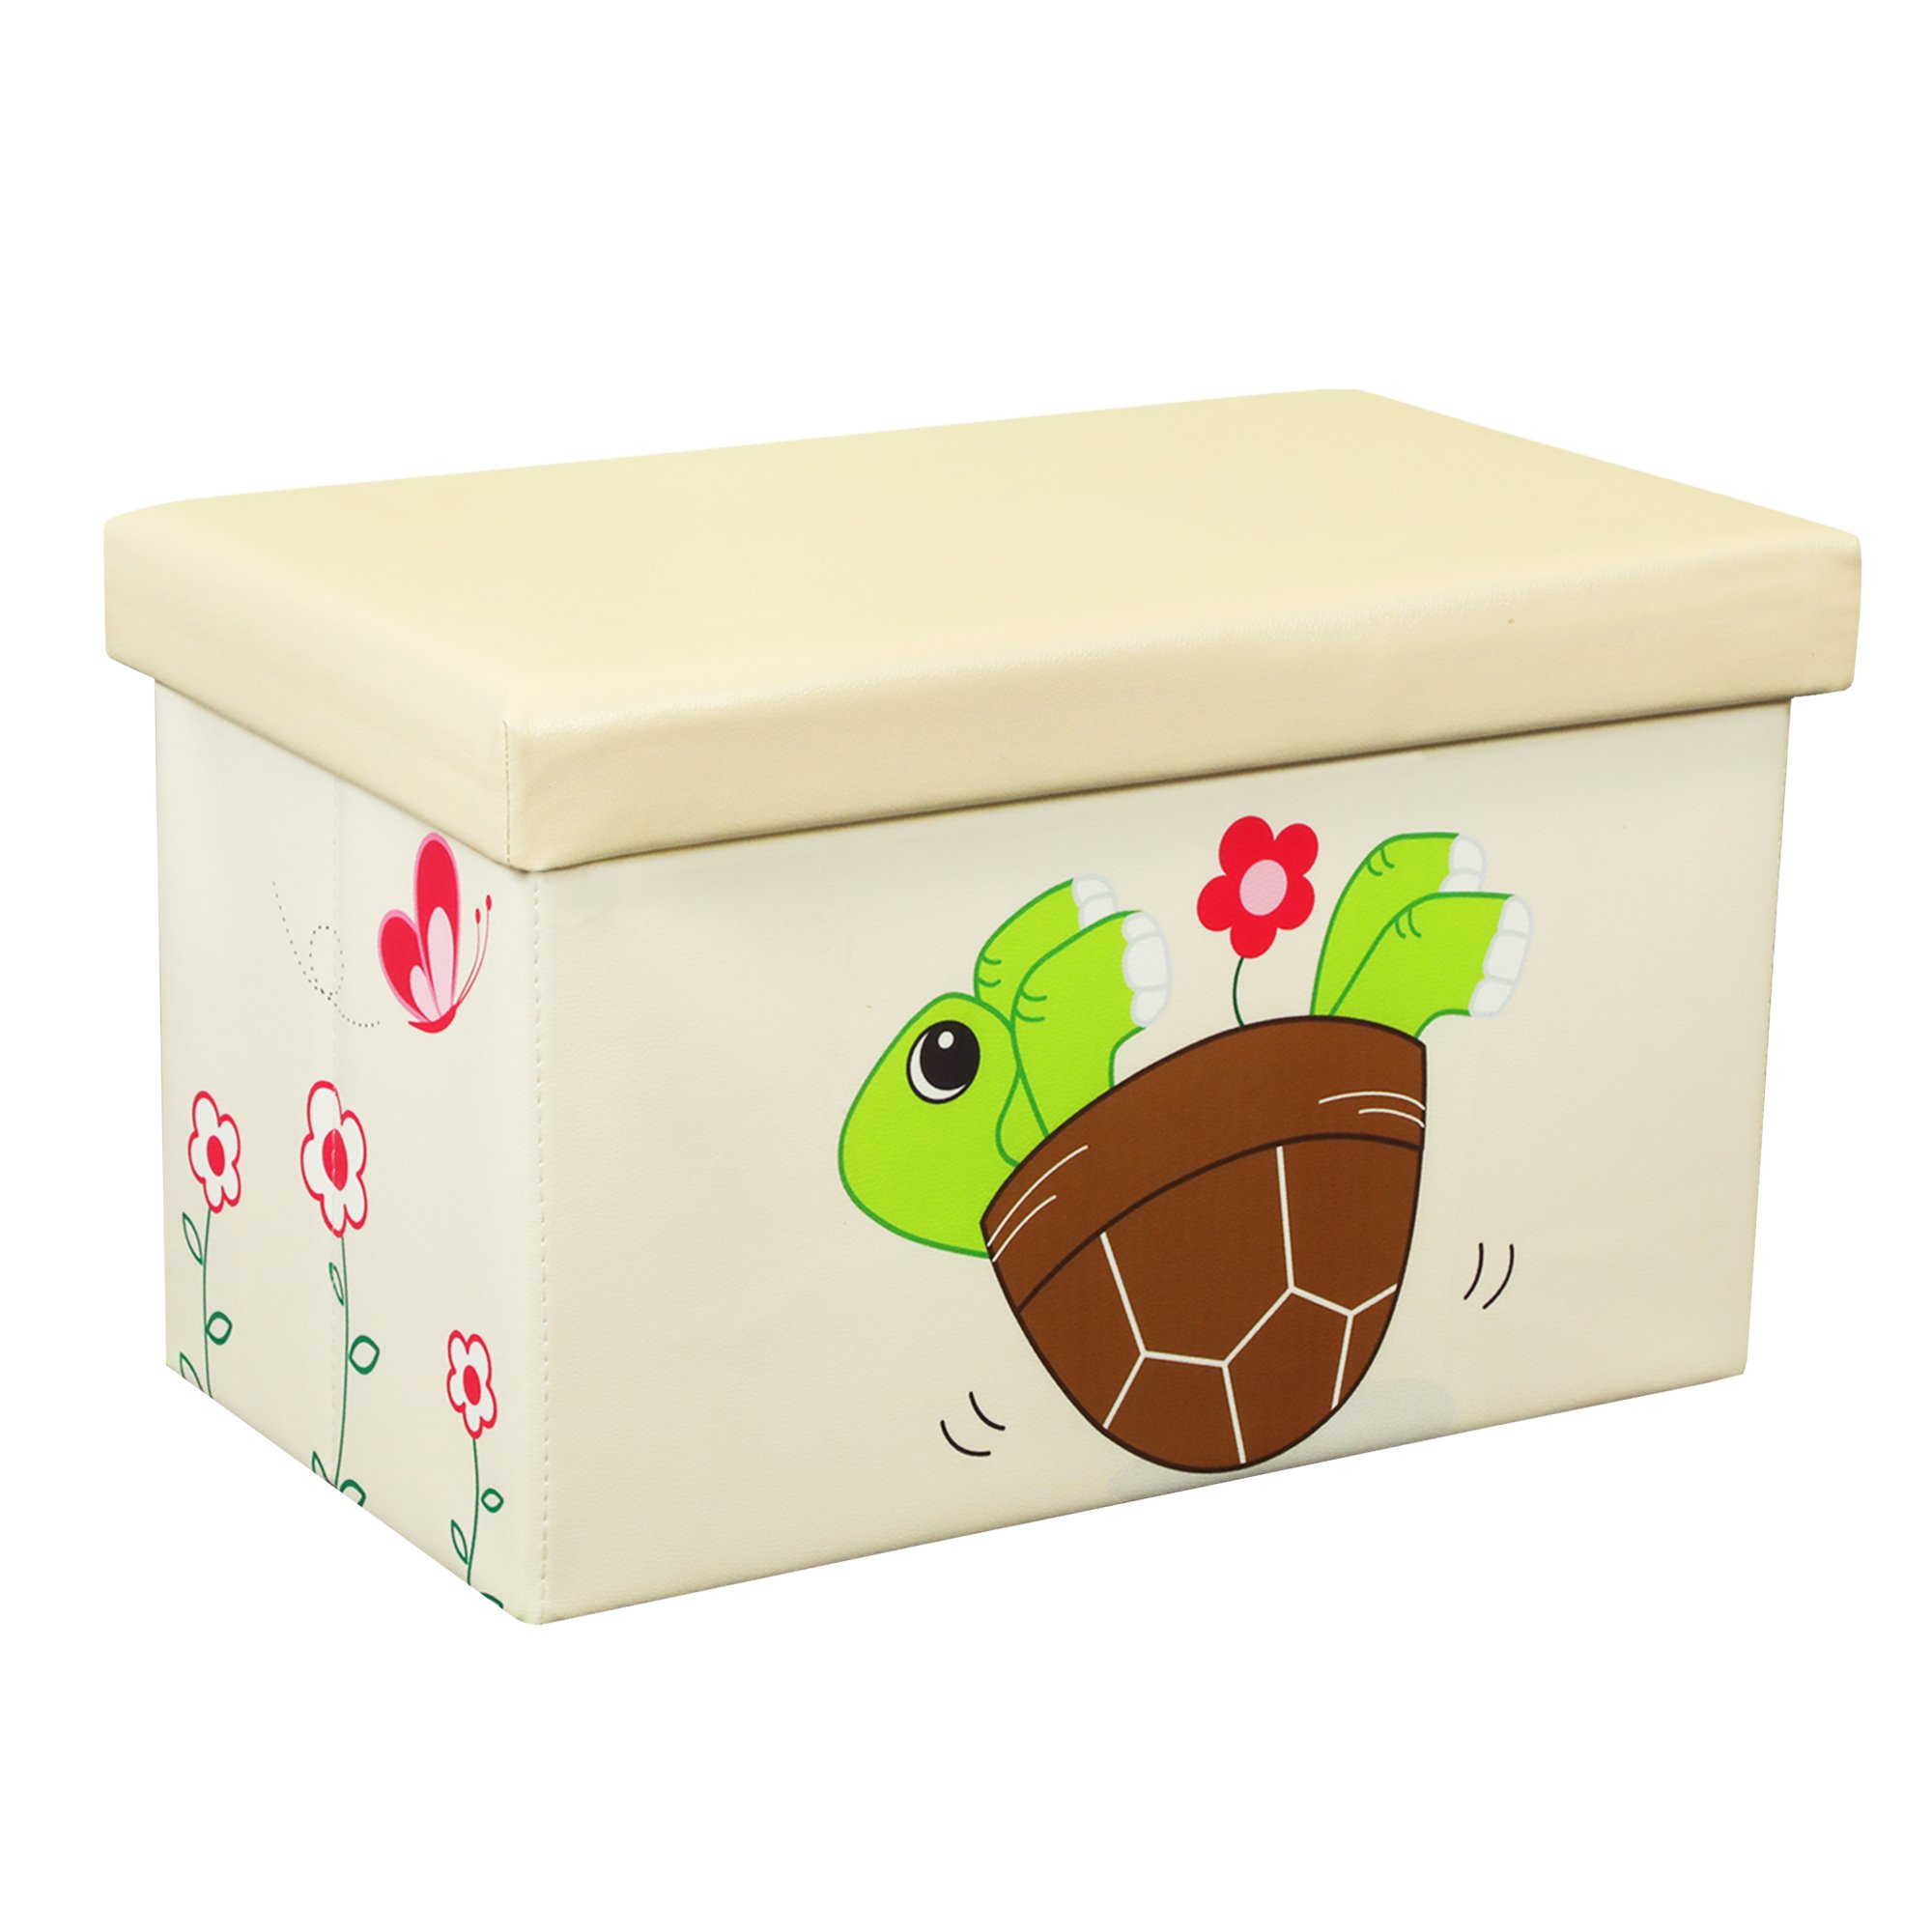 Otto & Ben 20'' Toy Box - Folding Storage Ottoman Chest with Foam Cushion Seat, Washable Faux Leather Foot Rest Stools for Kids, Turtle and Flower